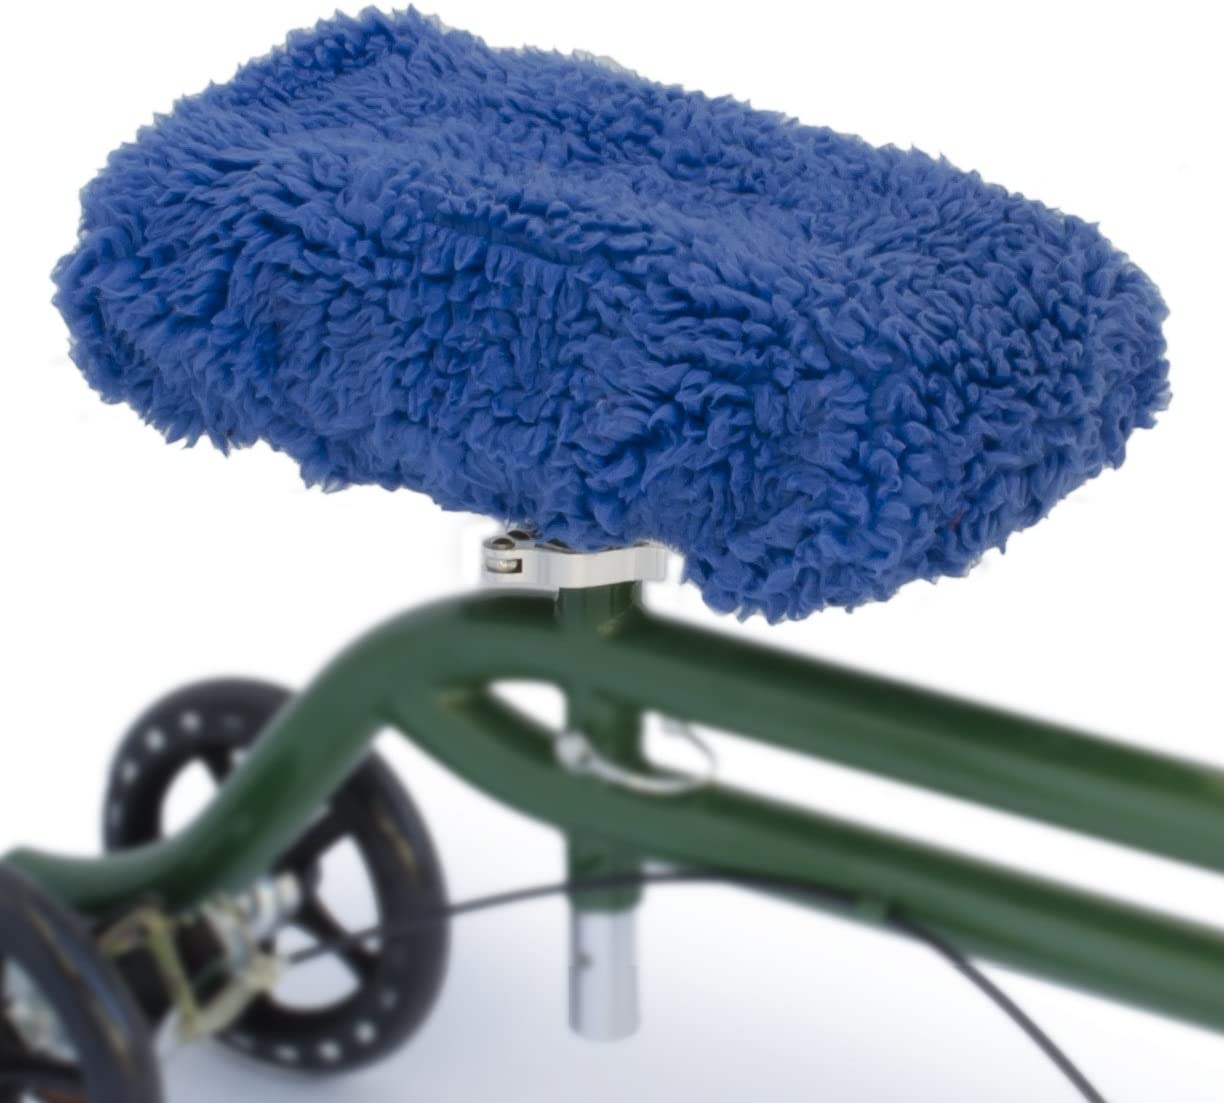 Deluxe Universal Knee Walker Pad - Cover Shipping included Max 60% OFF Blue Dark